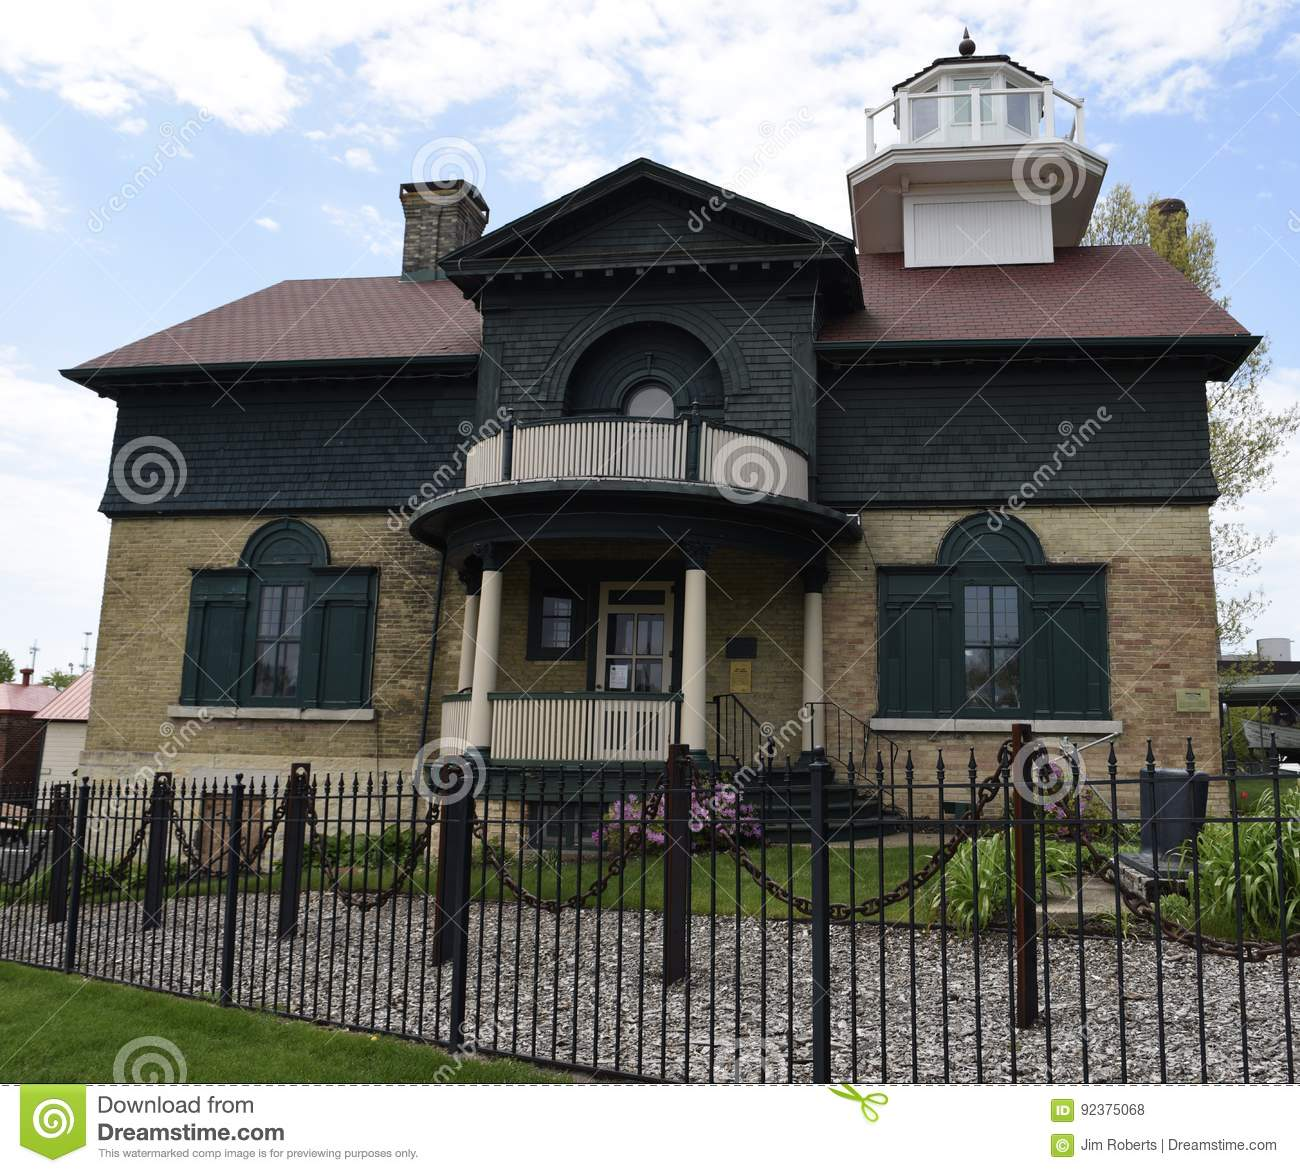 indiana dating michigan city According to our research of indiana and other state lists there were 103 registered sex offenders living in michigan city, indiana as of august 03, 2018 the ratio of number of residents in michigan city to the number of sex offenders is 302 to 1 median real estate property taxes paid for housing .